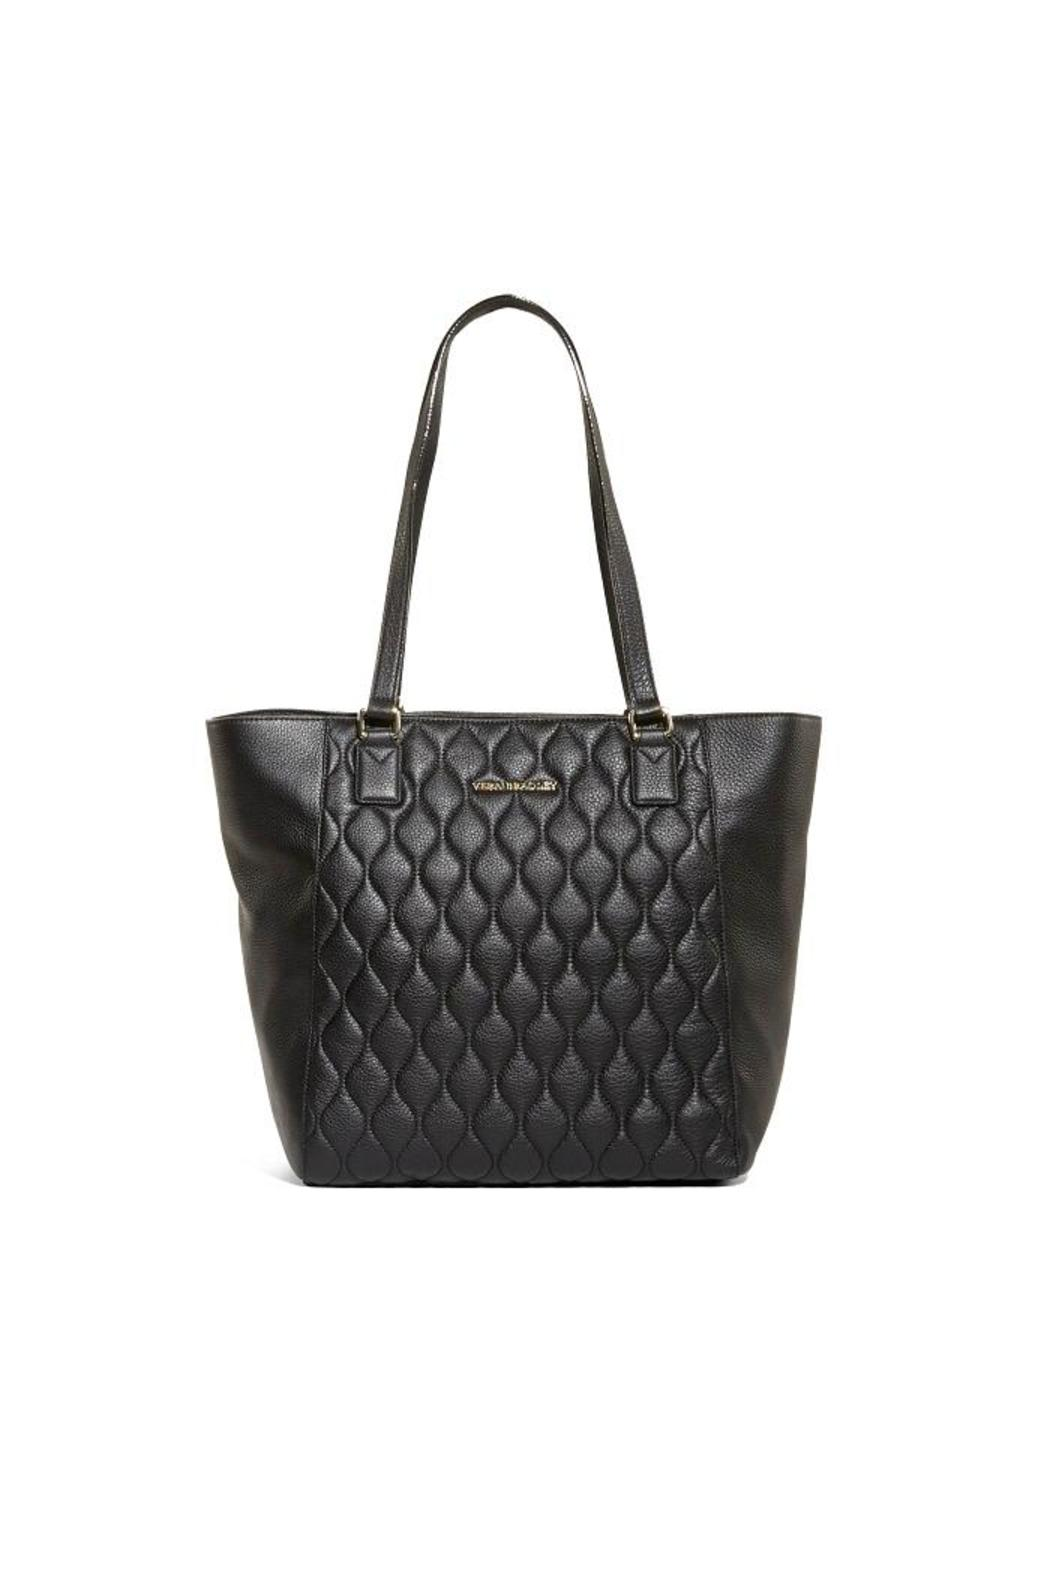 Vera Bradley Quilted Ella Tote From Wisconsin By Wilkins